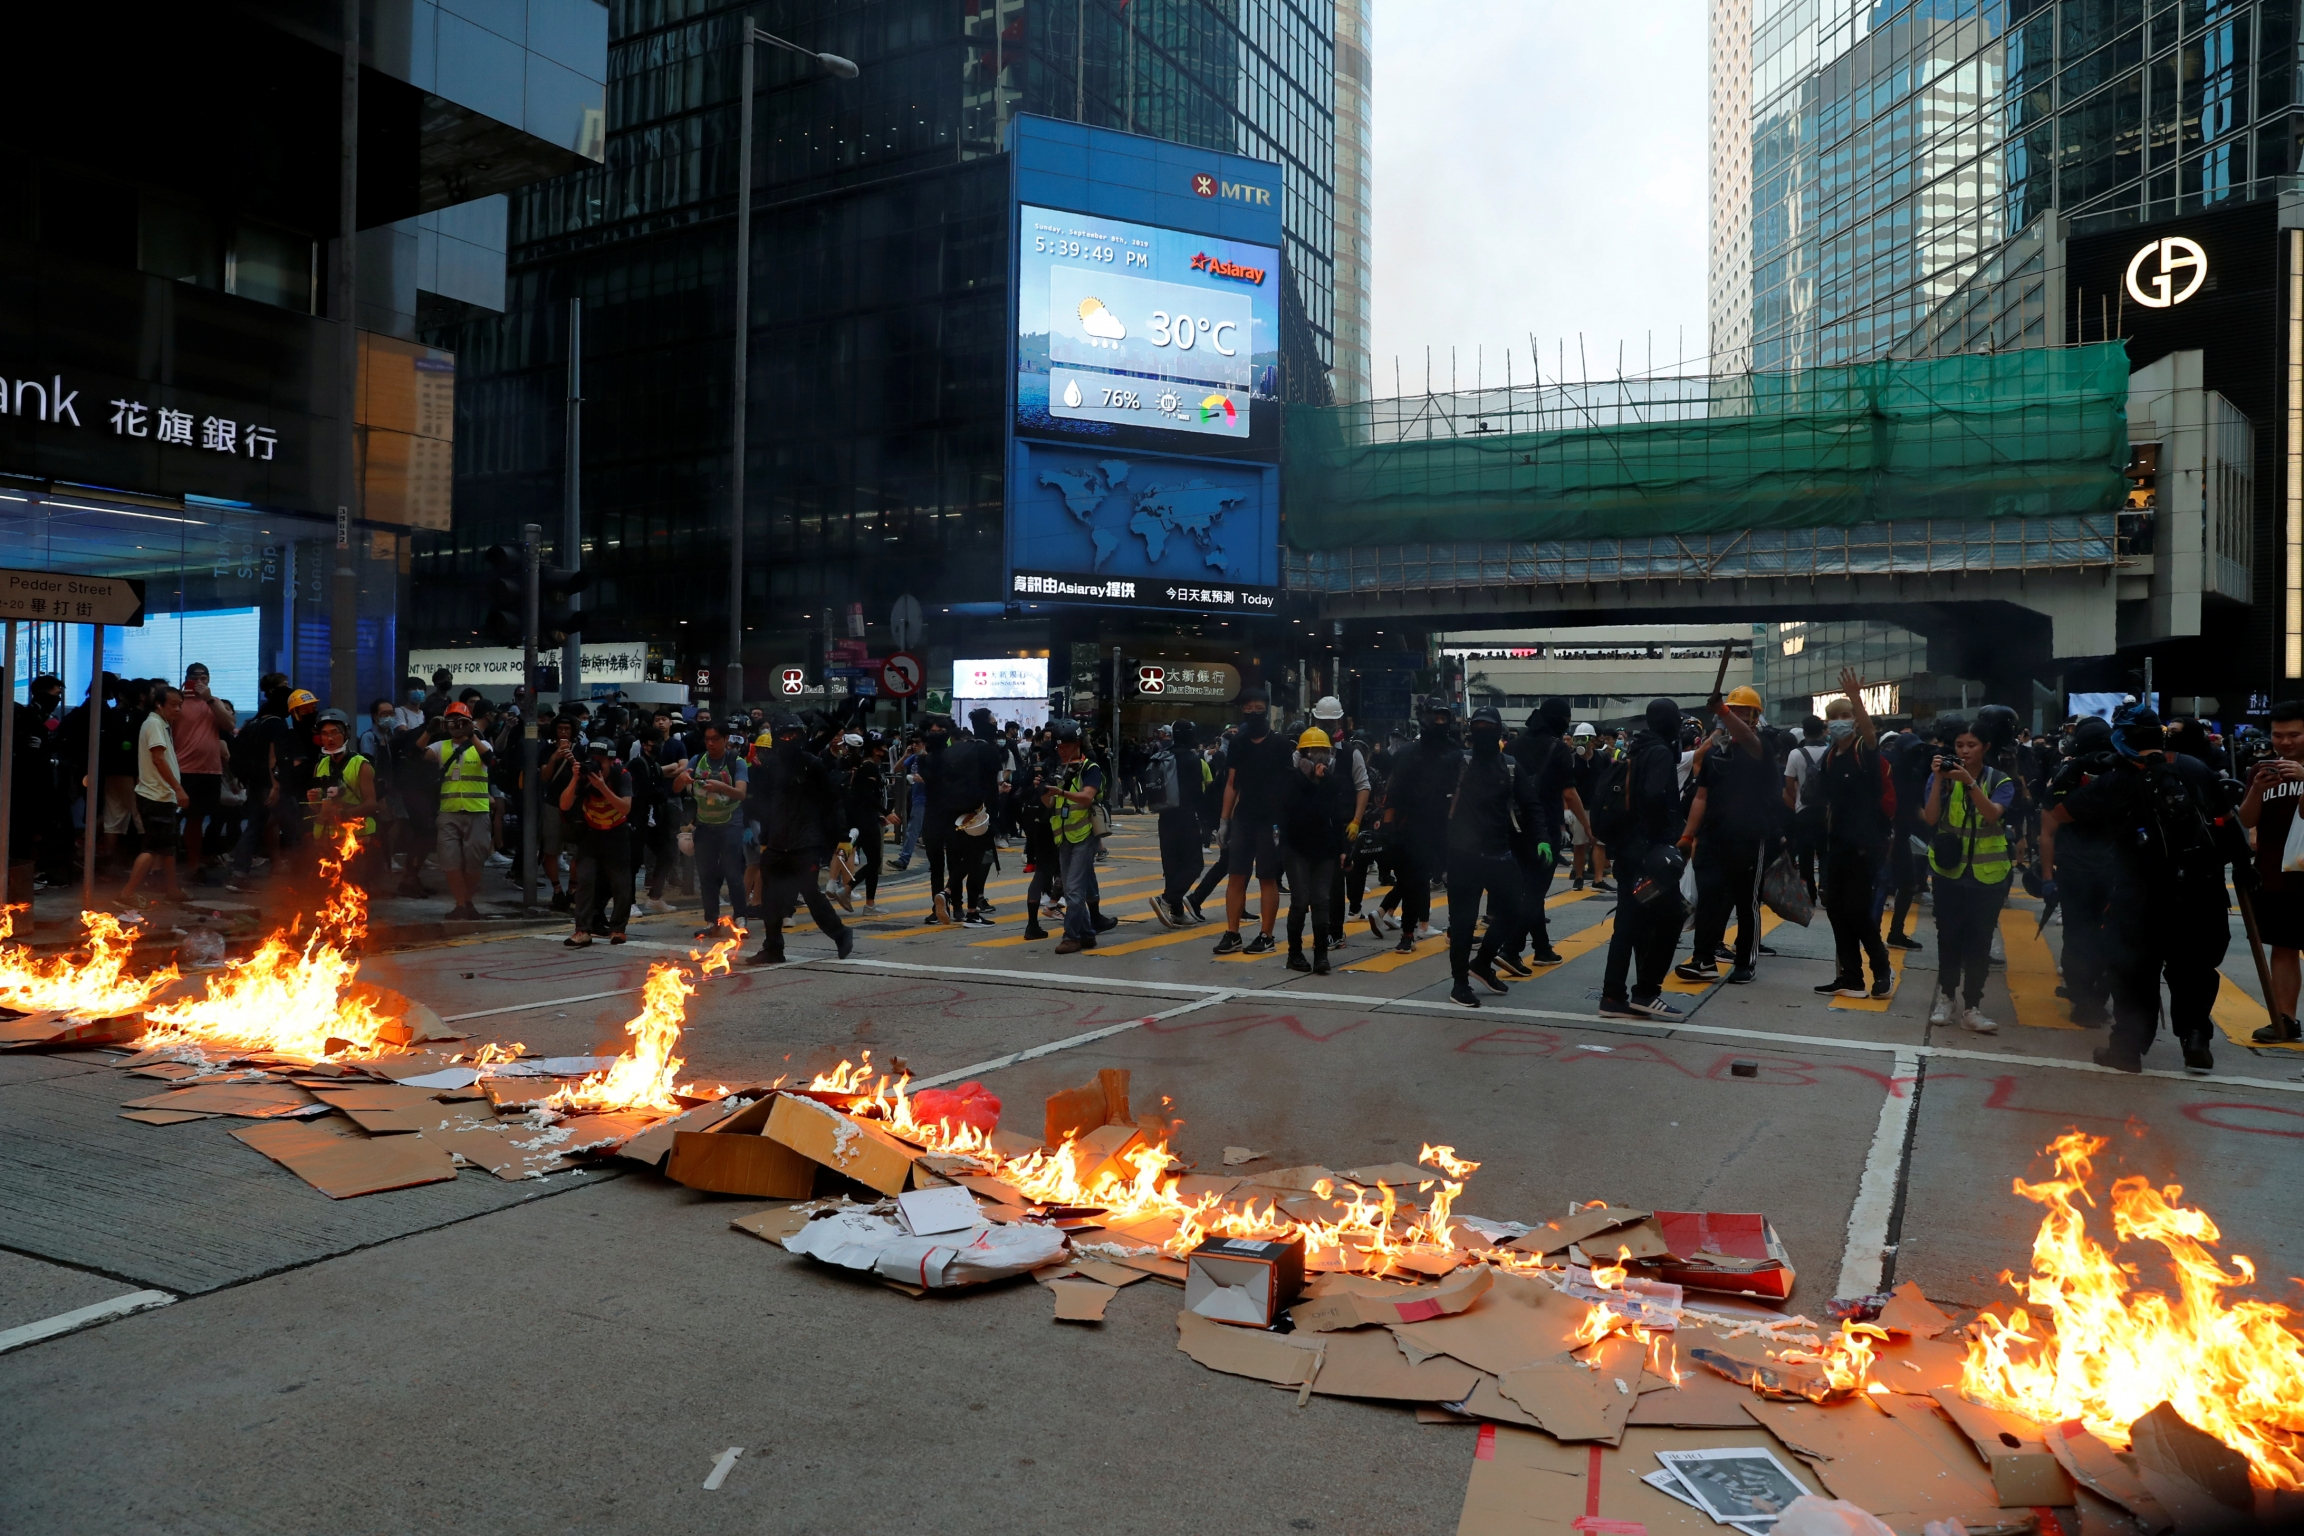 A line of fire on a road, as a crowd of people walk away